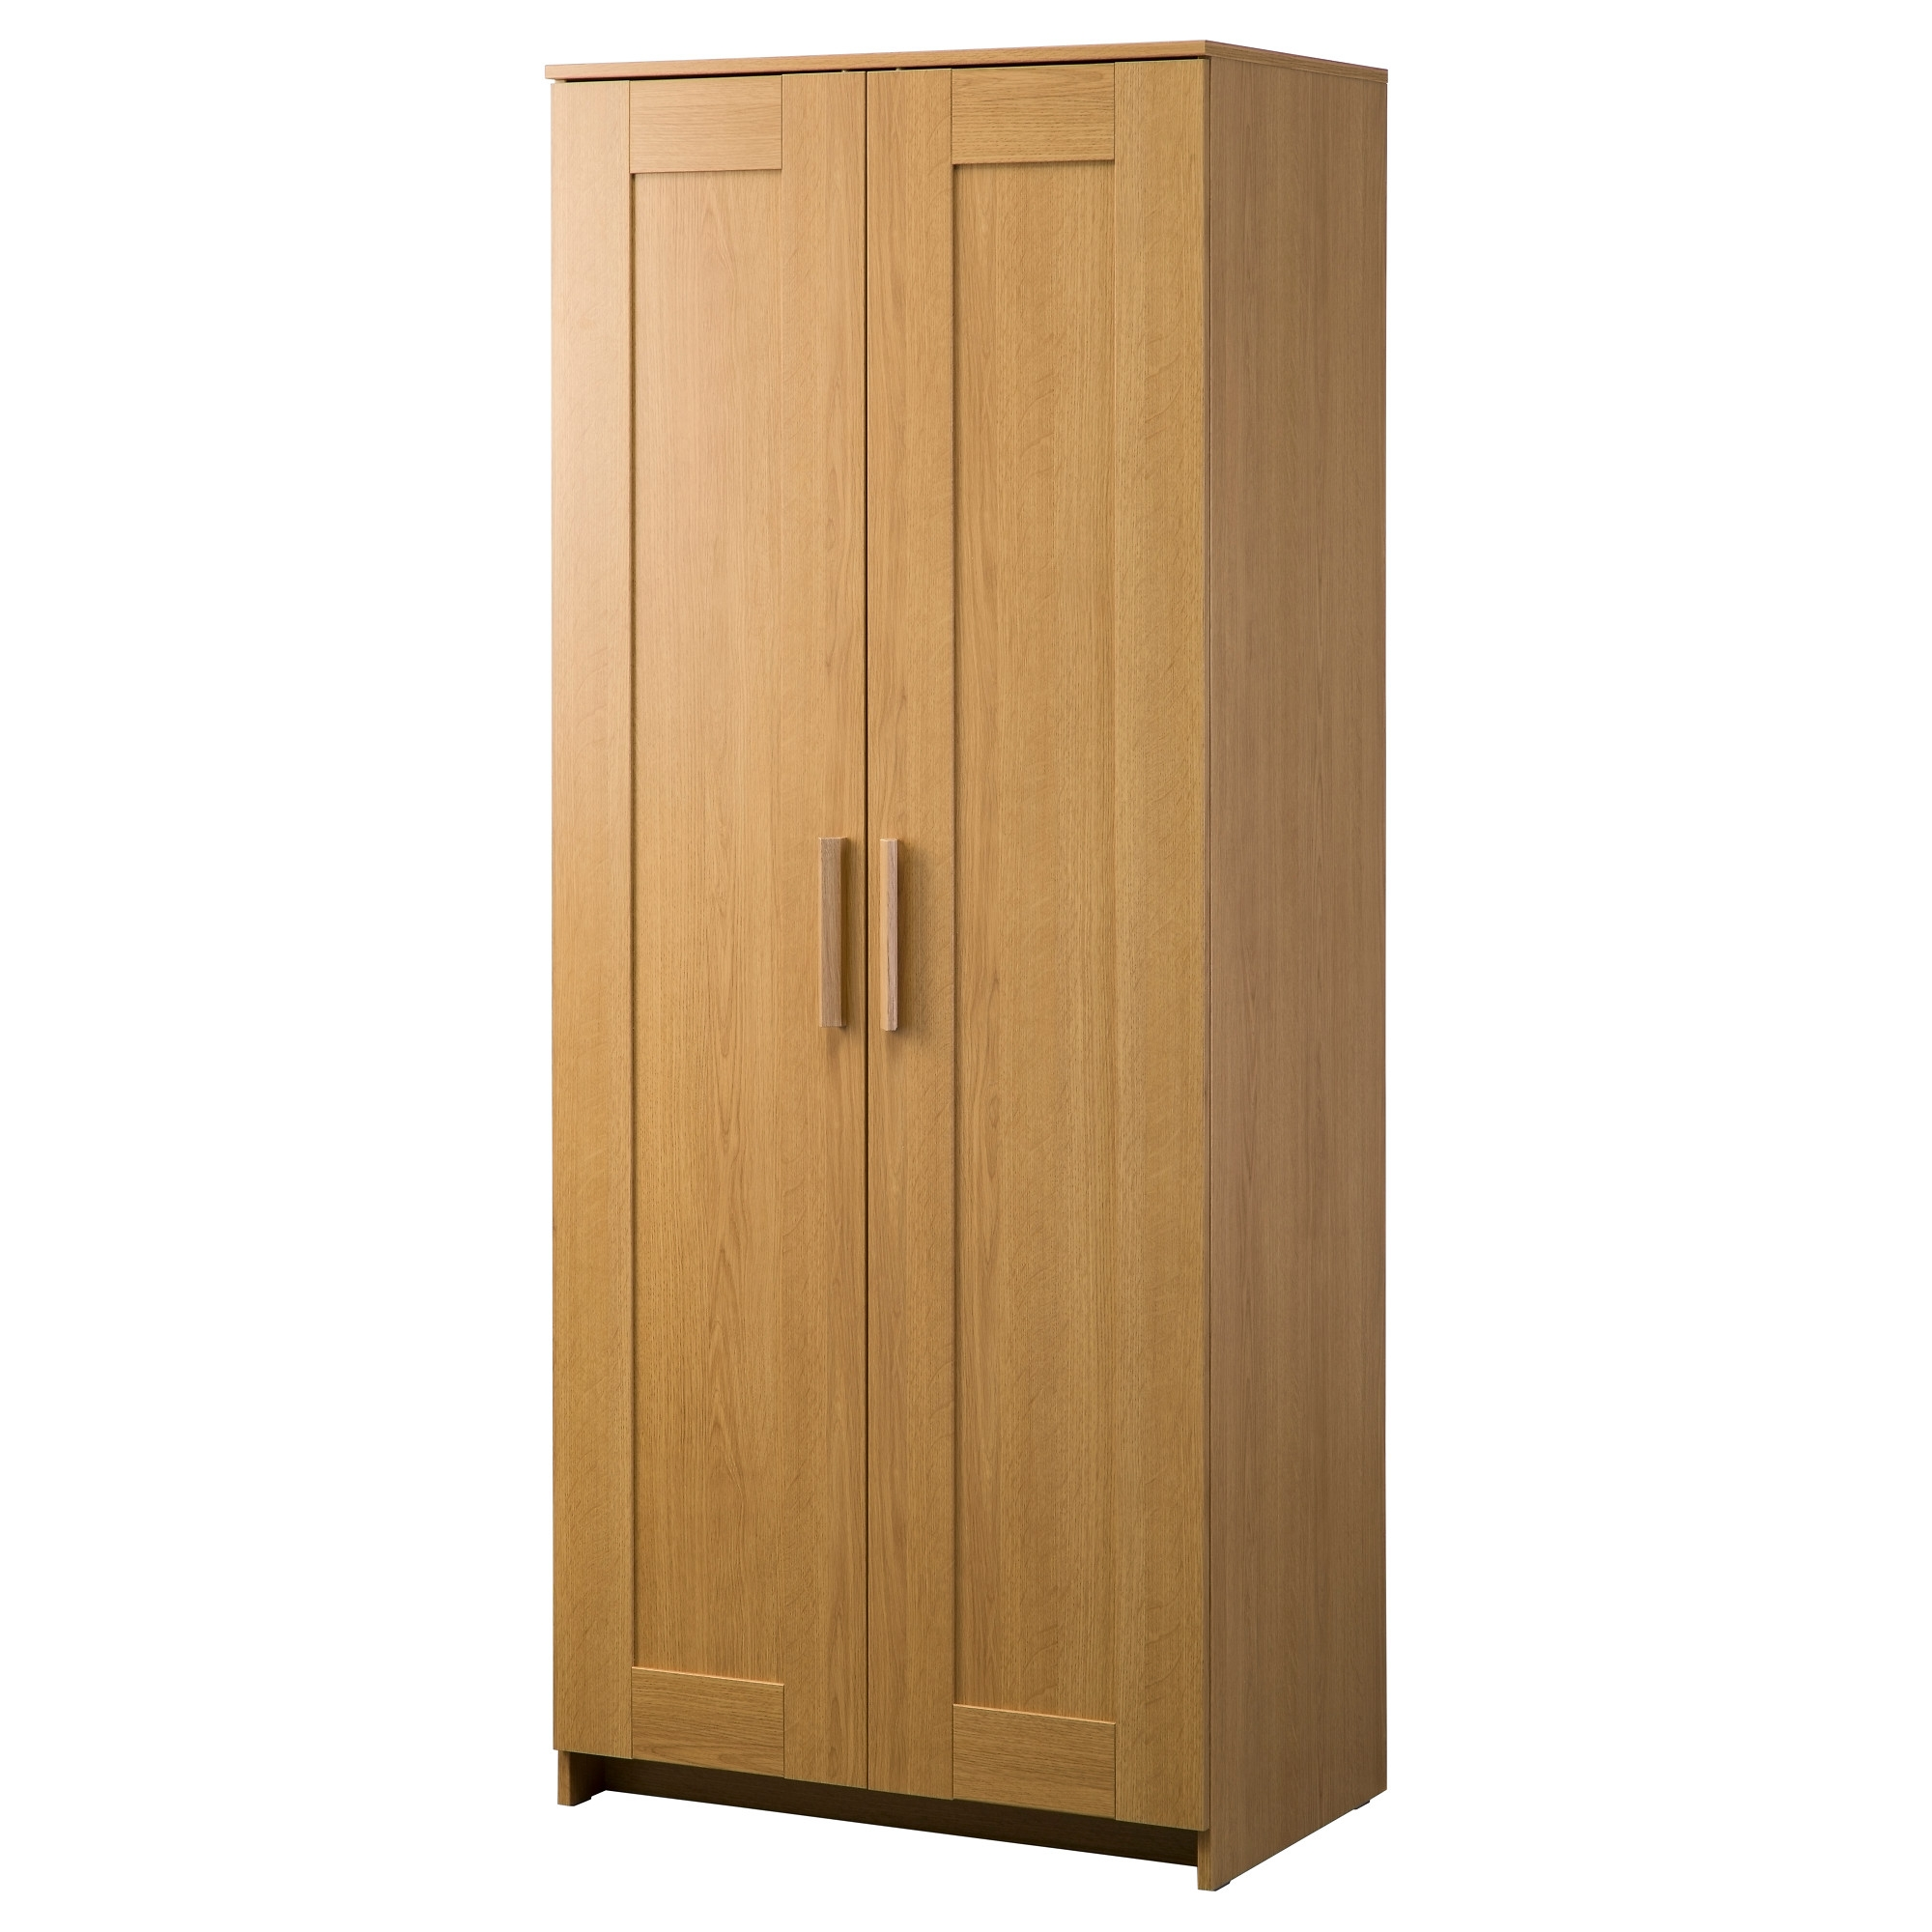 Design Excellent Single Wardrobe With Shelves Only Installing Intended For Wardrobes With Shelves (View 11 of 15)